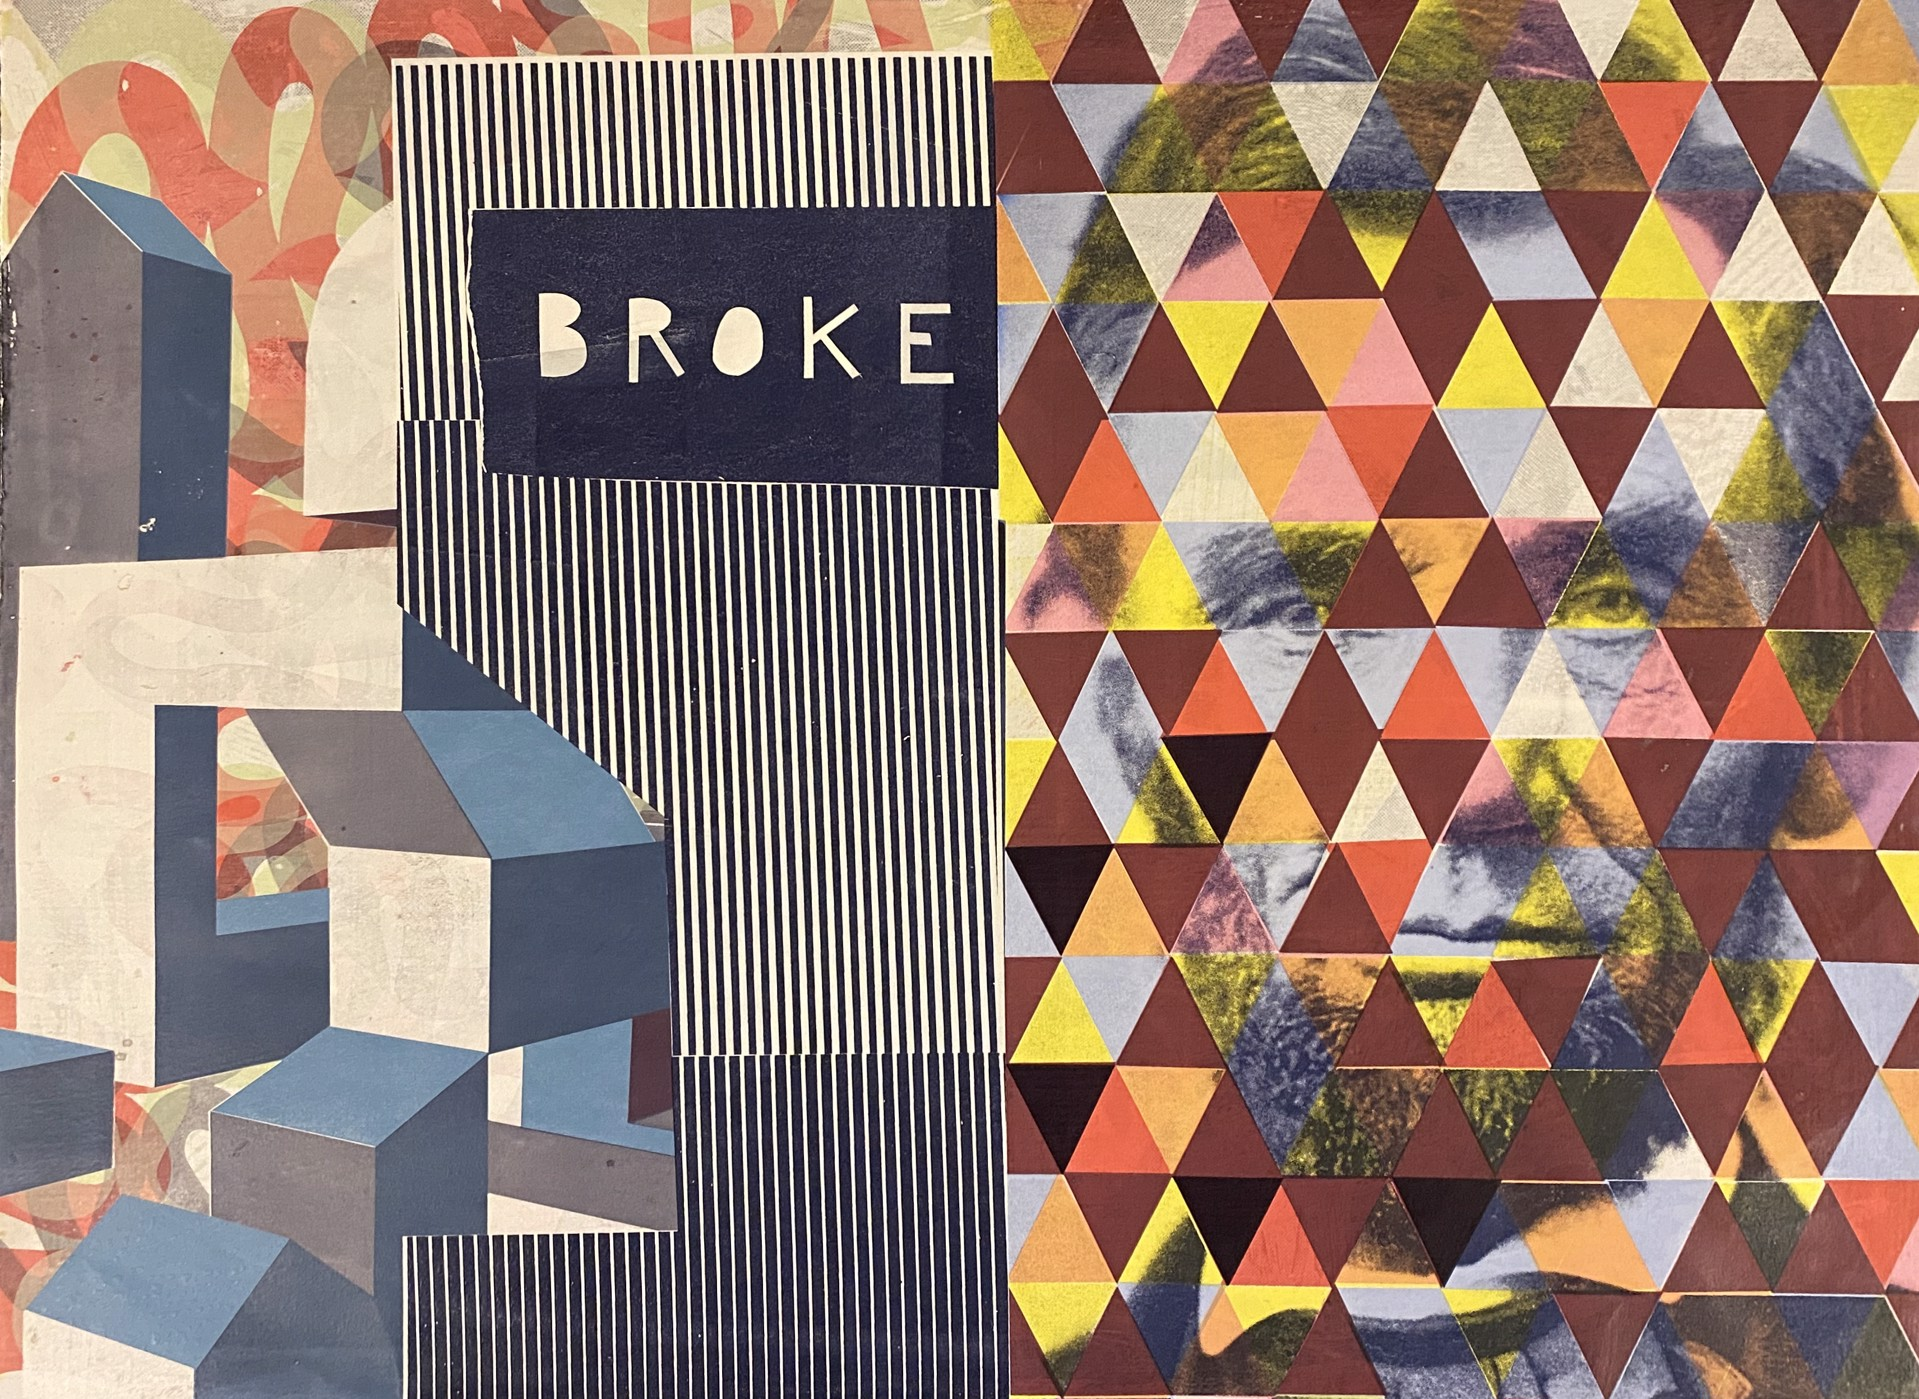 Broke by Chadwick Tolley